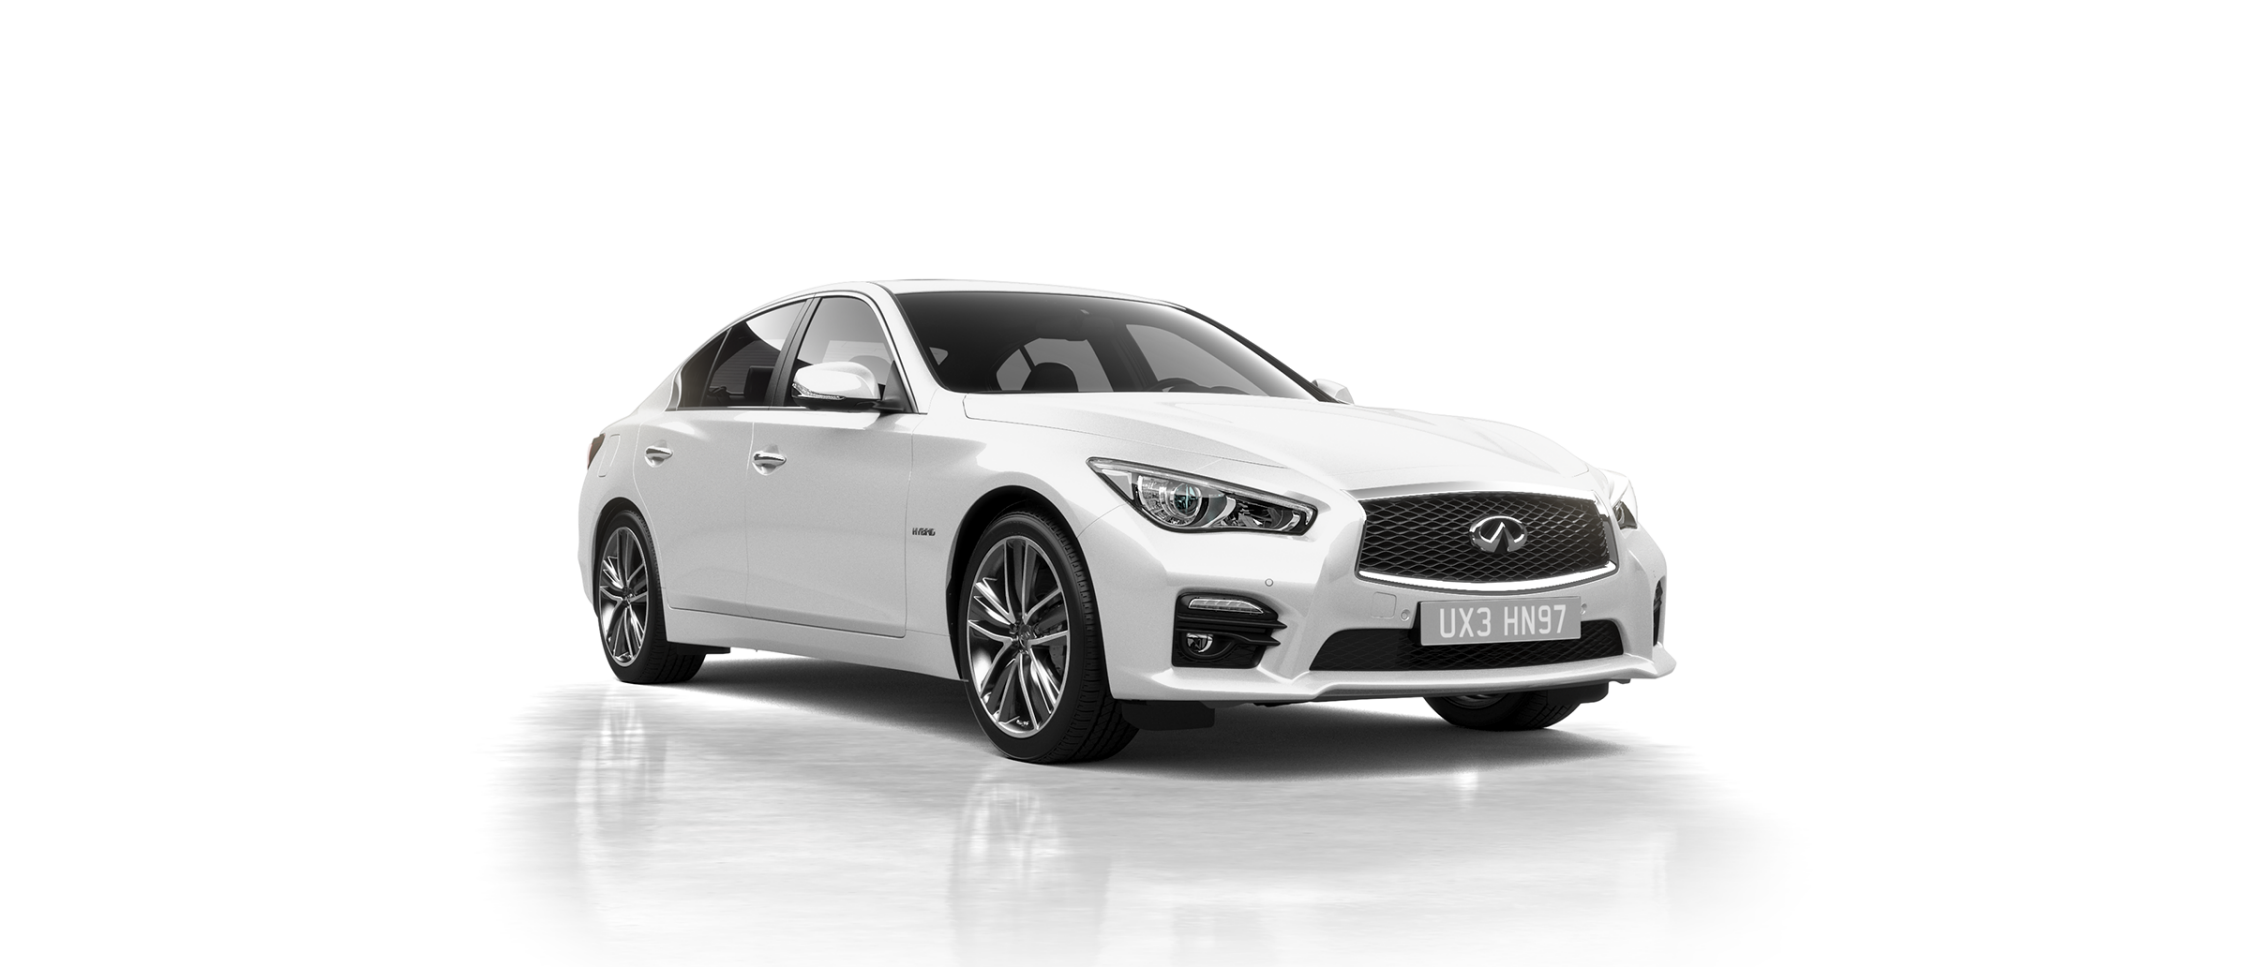 INFINITI Q50 The Technologically Refined Sports Luxury Saloon